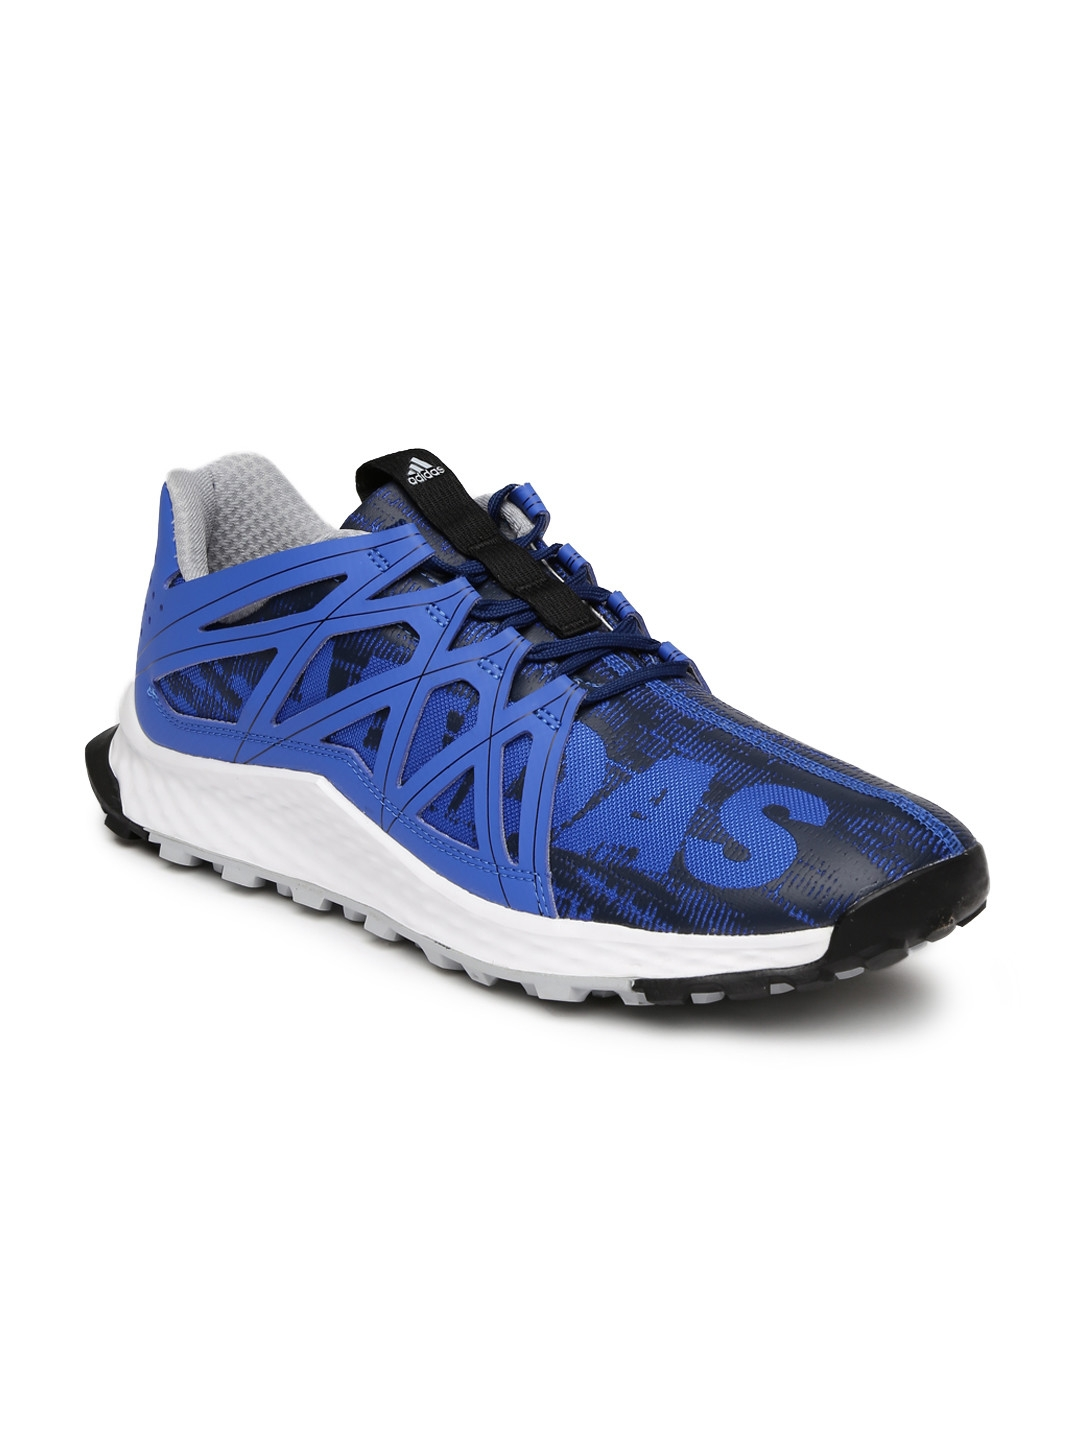 4c1c5799f489c Buy ADIDAS Men Blue VIGOR BOUNCE Running Shoes - Sports Shoes for ...